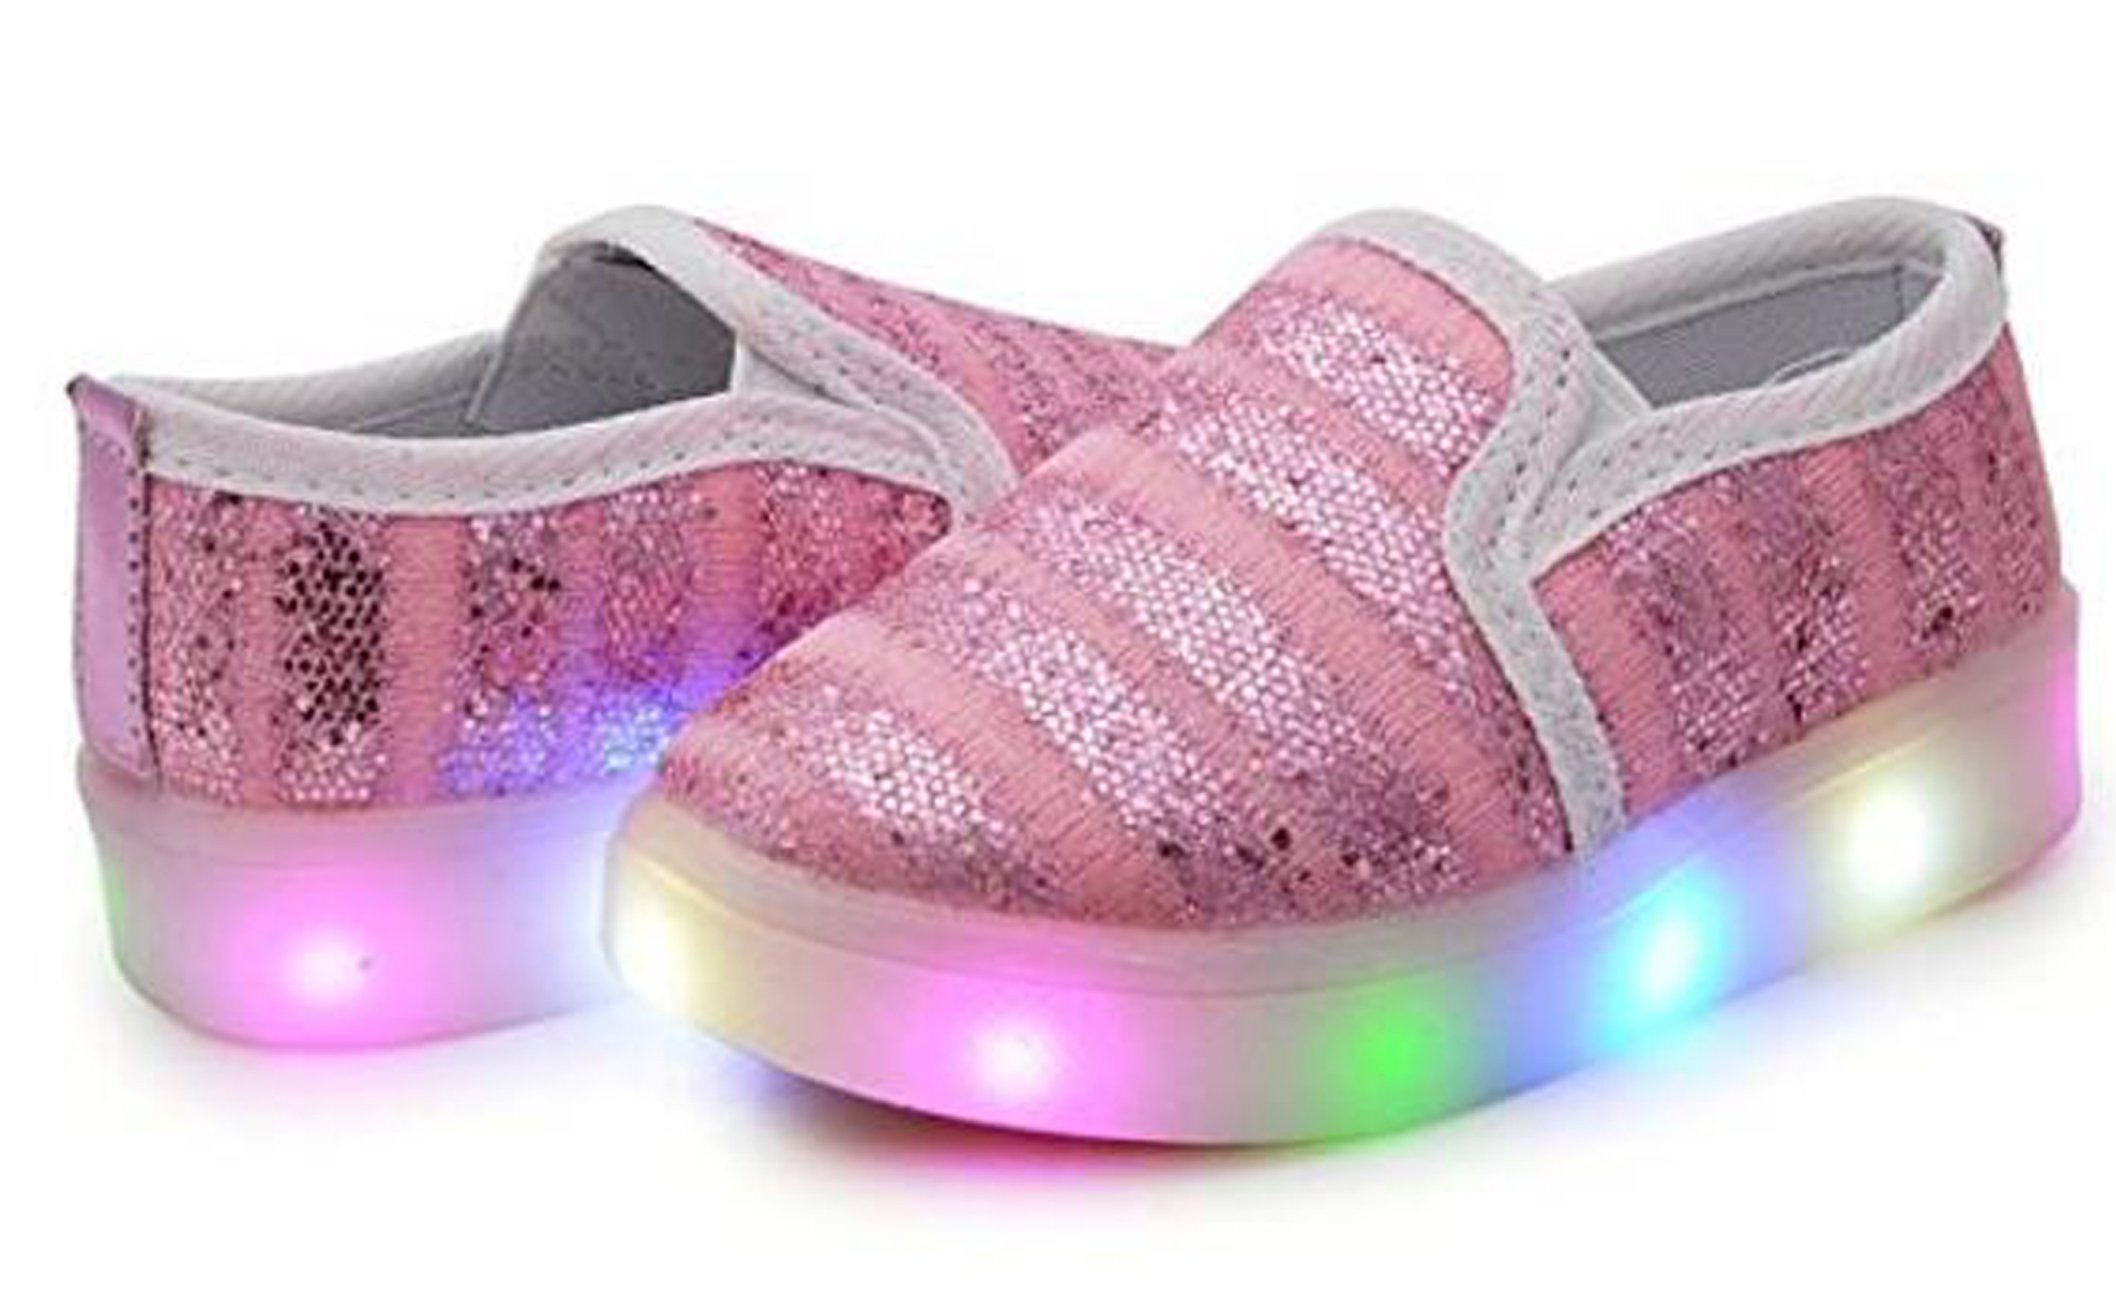 Toddler//Little Kid Pink US 8.5M Otamise Girls Light up Sequins Shoes Slip-on Flashing LED Casual Loafers Flat Sneakers